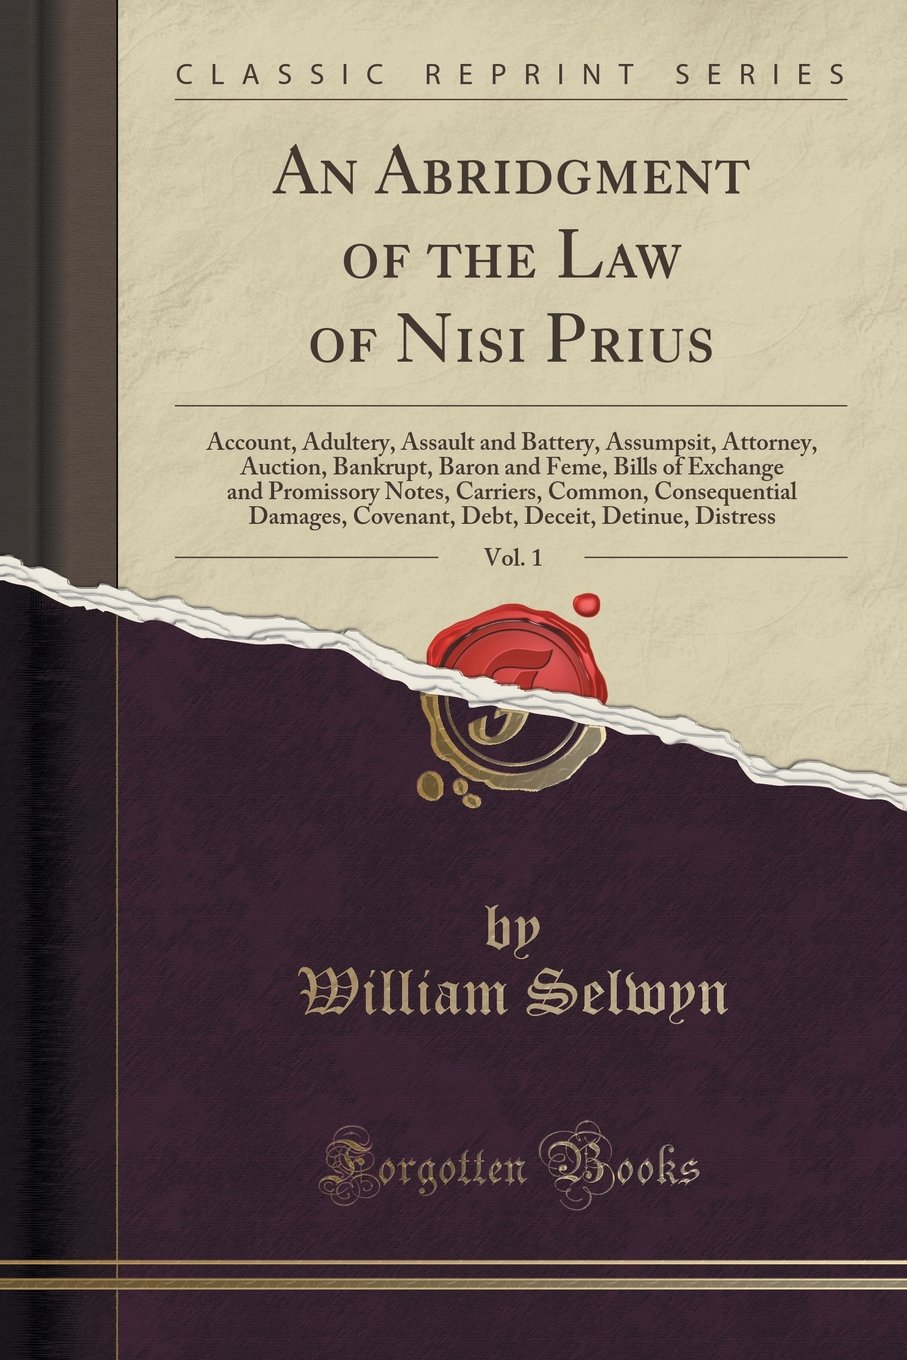 Download An Abridgment of the Law of Nisi Prius, Vol. 1: Account, Adultery, Assault and Battery, Assumpsit, Attorney, Auction, Bankrupt, Baron and Feme, Bills ... Damages, Covenant, Debt, Deceit, Detinu pdf